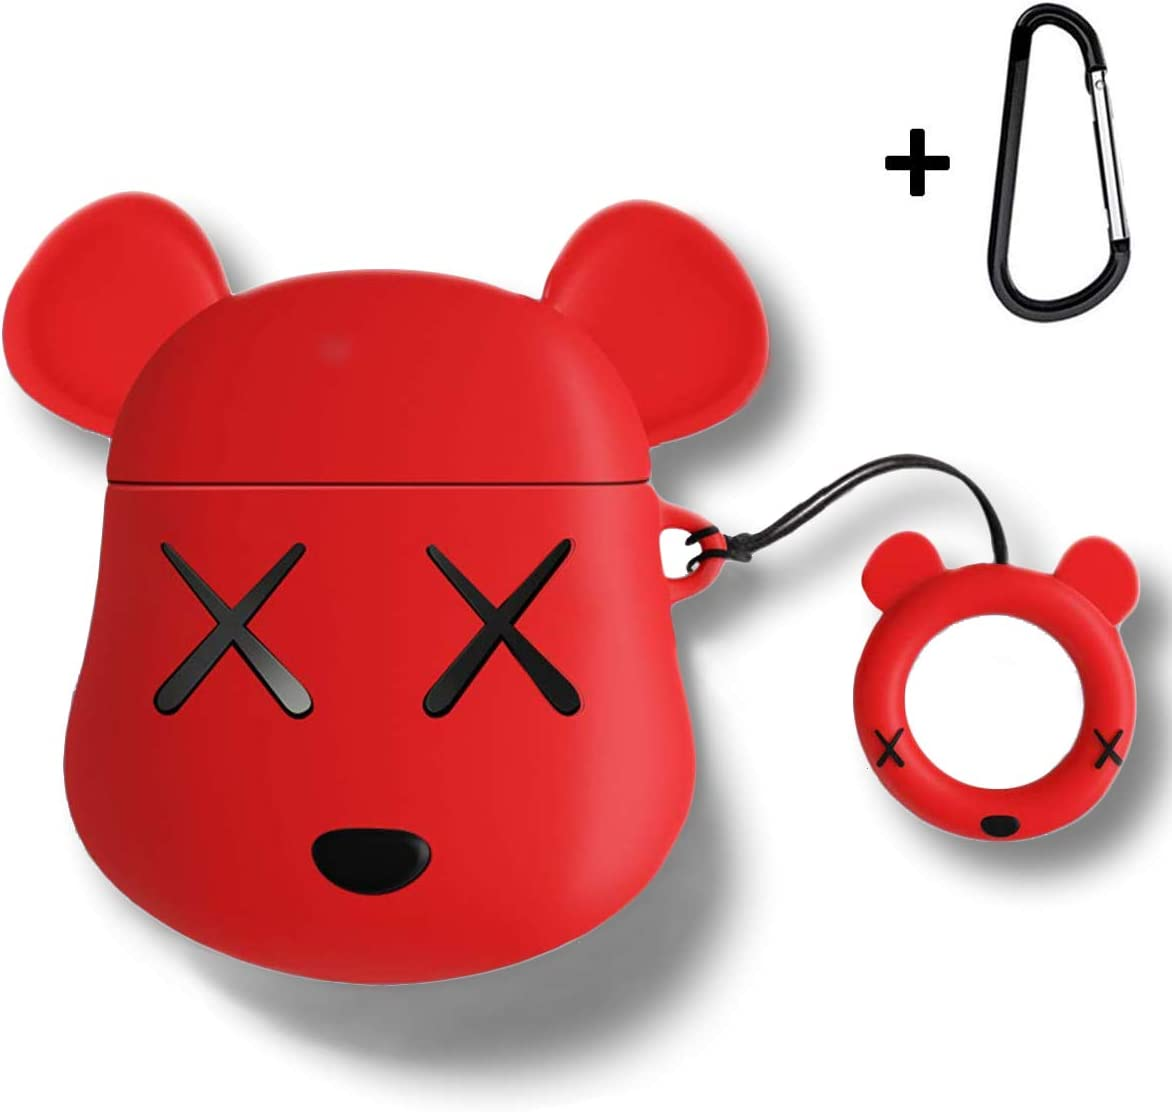 MOLOVA Case for Airpods Case,AirPods 2 Case,Airpods Accessories,Airpods Skin, Cute Cartoon Bear Shock Proof Cover Compatiable with Apple AirPods Wireless Charging Case with Ring Rope Keychain (Red)